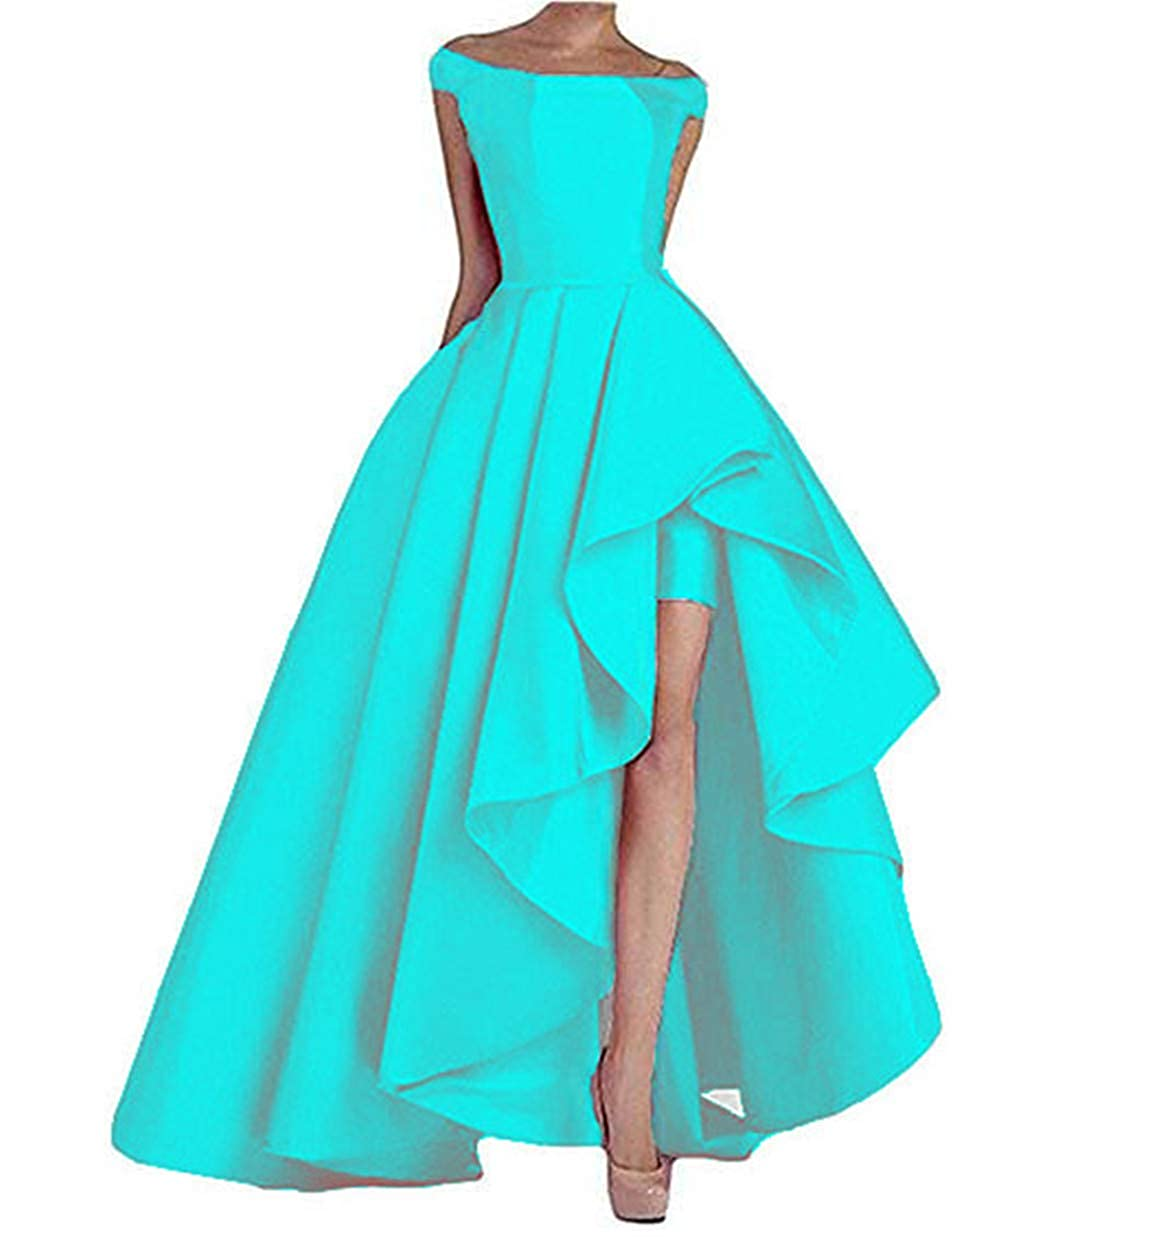 bluee Aiyue Yishen Women's OneShoulder Long Prom Dresses Gown Satin Evening Dresses